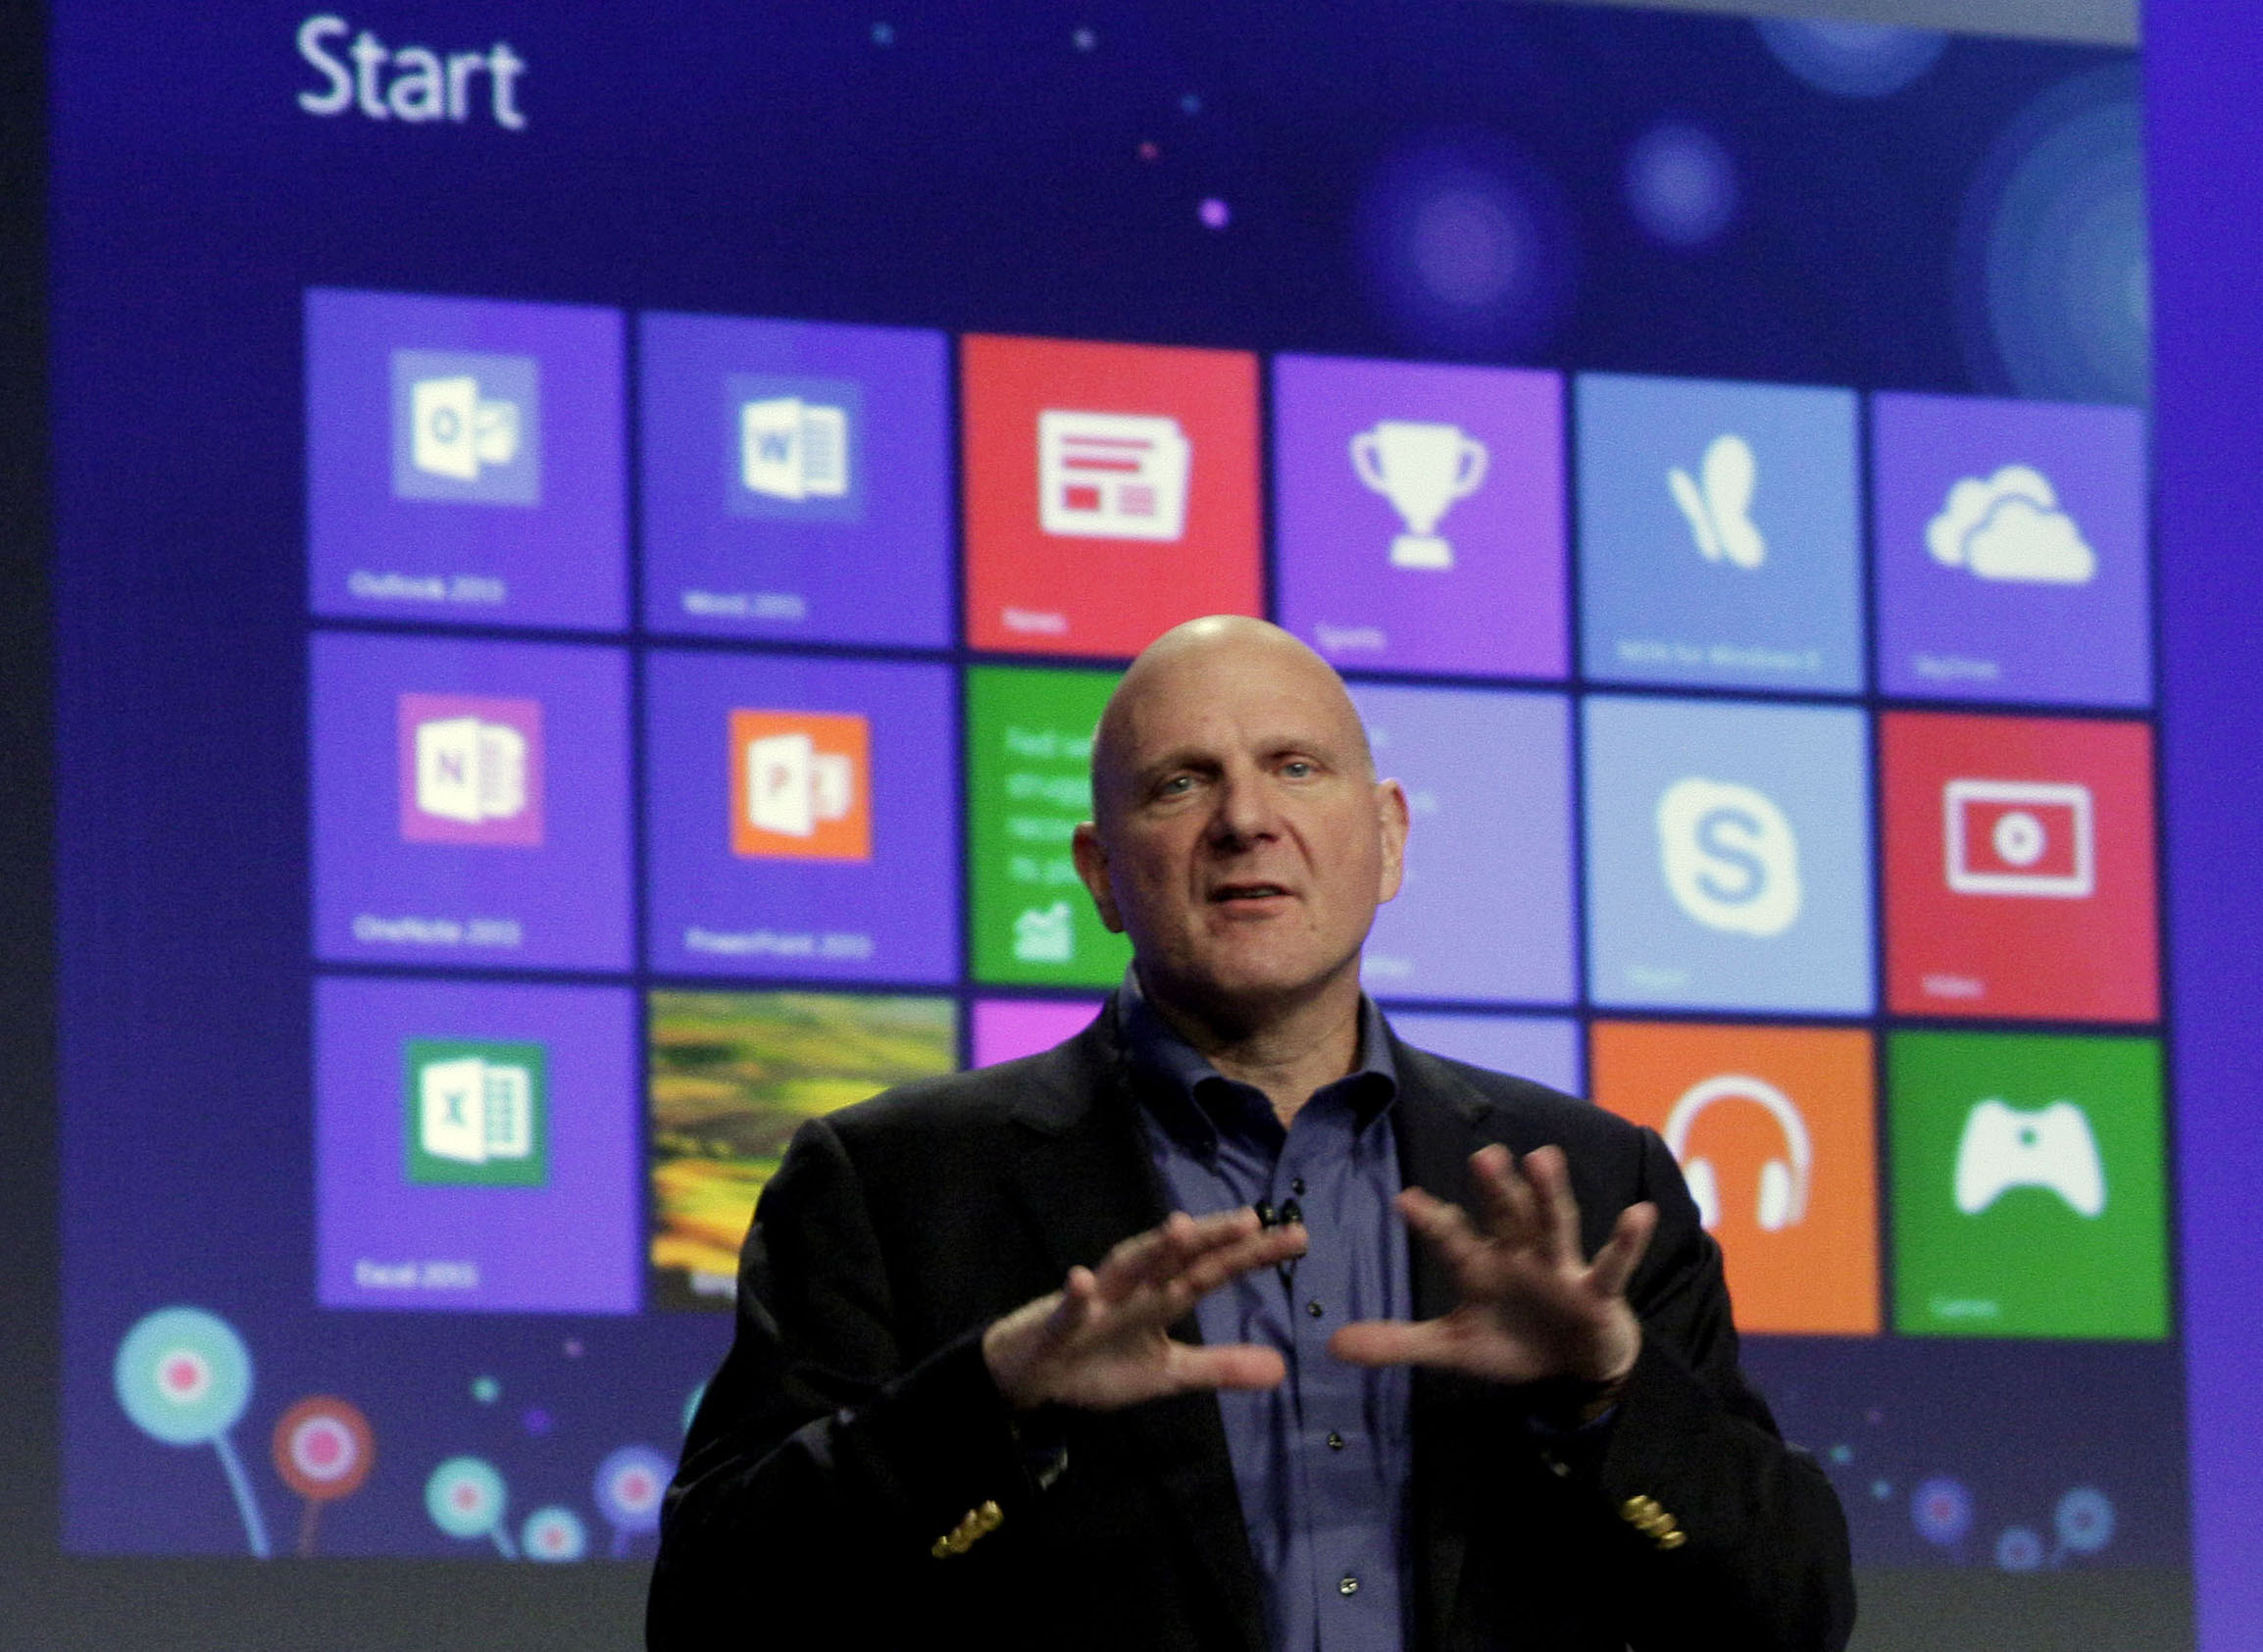 microsoft says ceo ballmer to retire in next 12 months